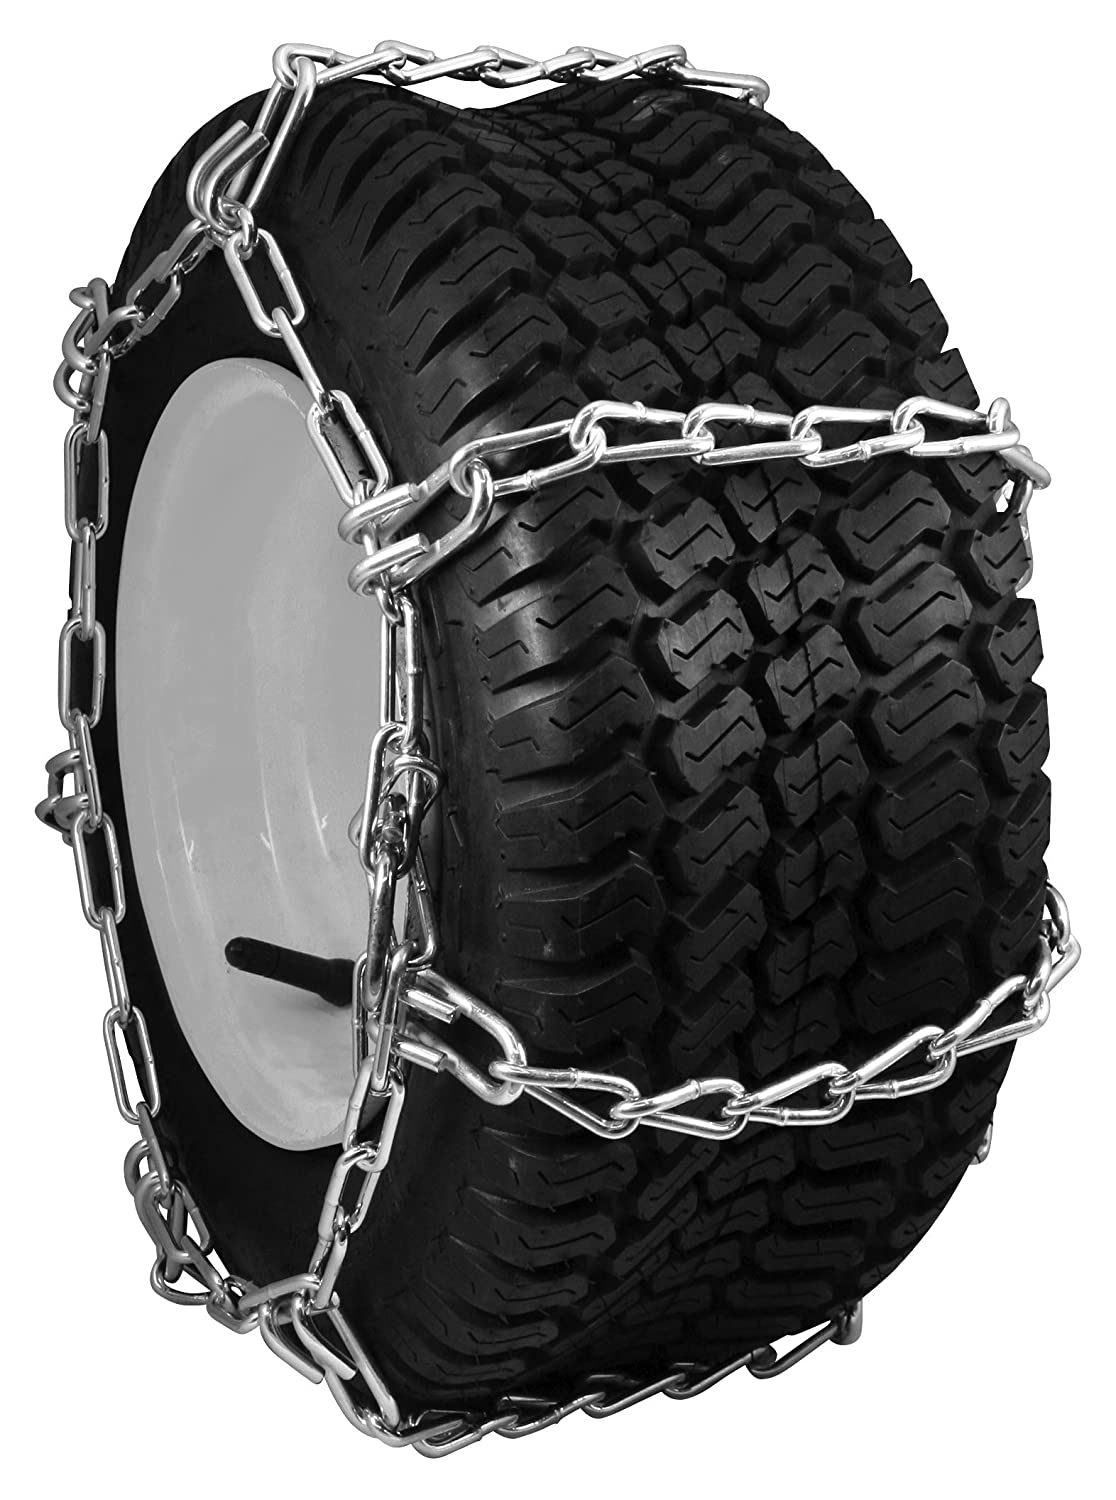 Security Chain Company 1060456 Max Trac Snow Blower Garden Tractor Tire Chain SCC